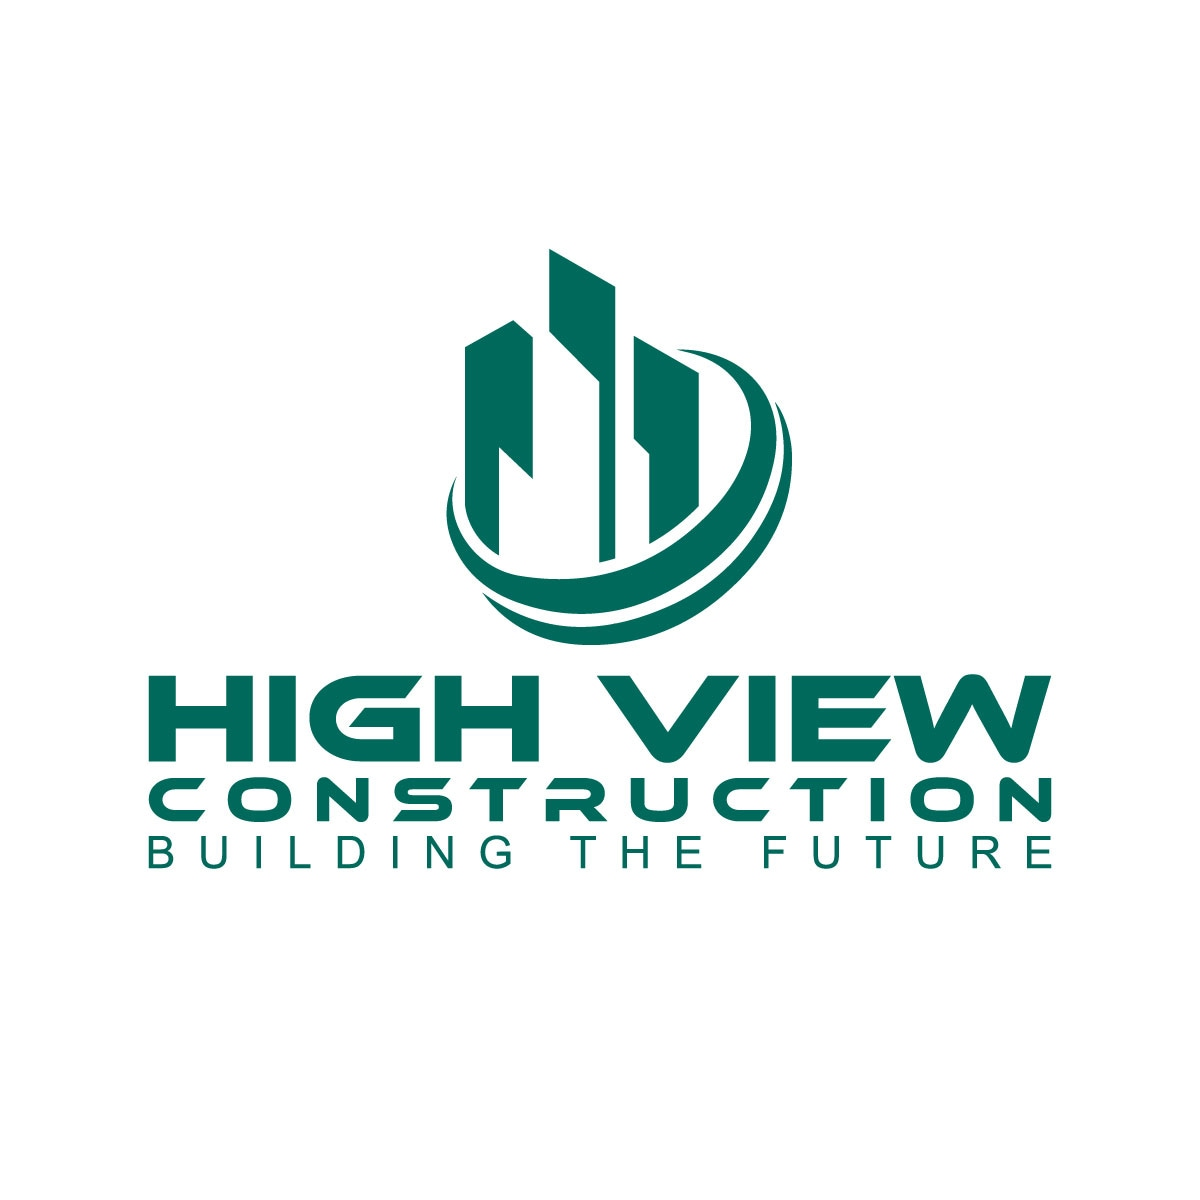 High view construction